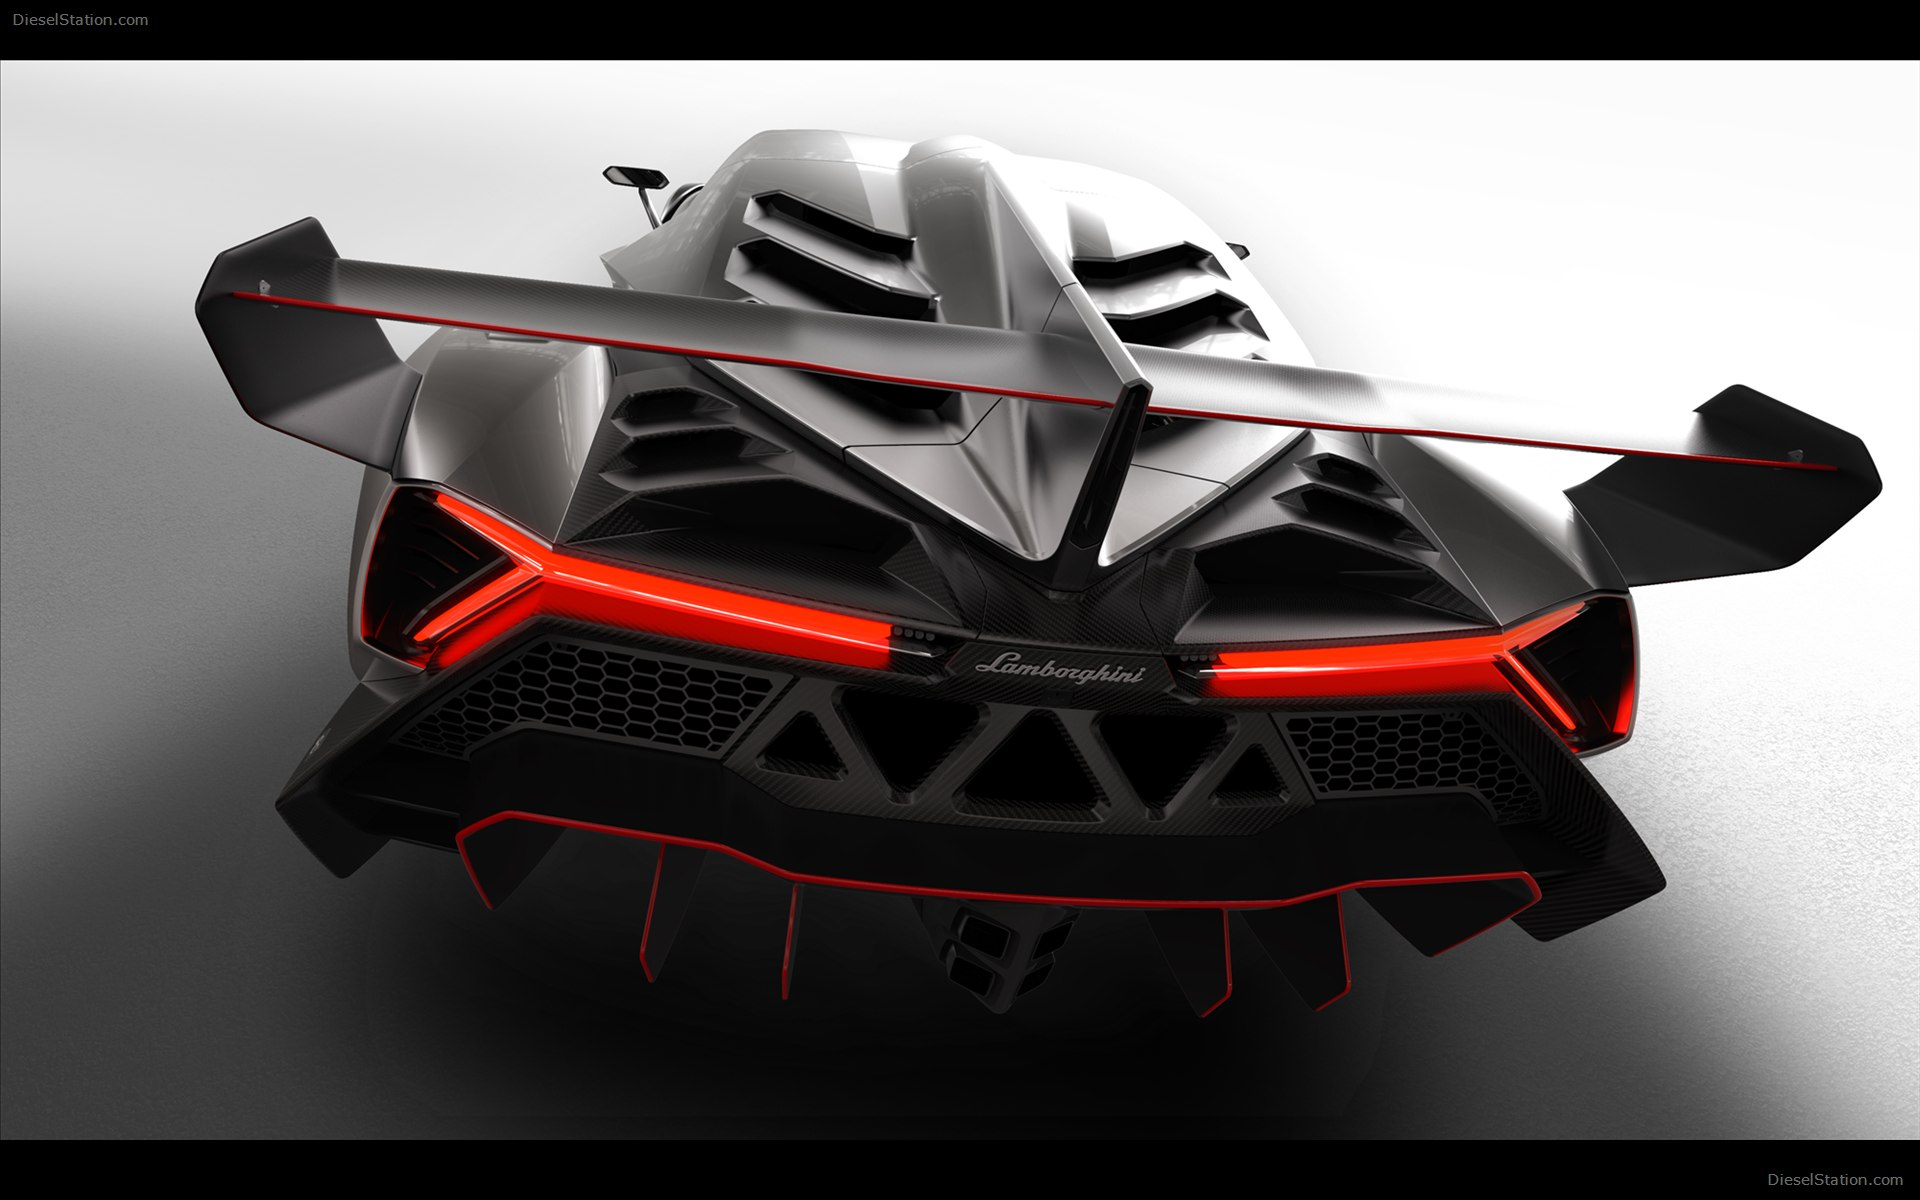 Lamborghini Veneno 2013 Widescreen Exotic Car Wallpaper 03 of 20 1920x1200